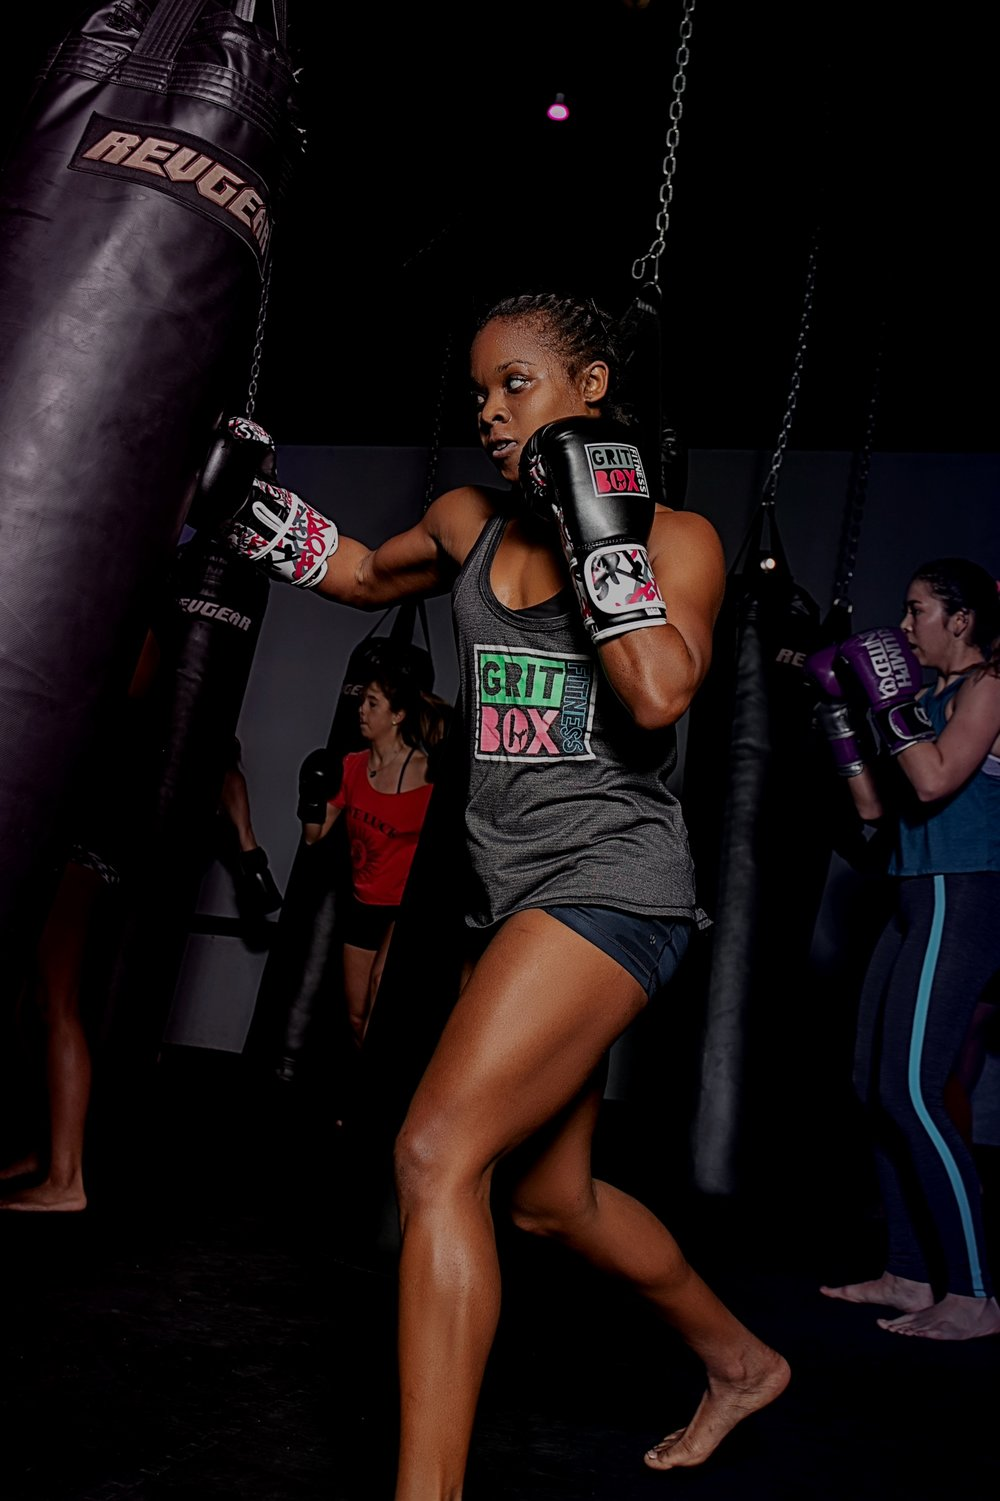 Kickboxing - Our high-intensity kickboxing classes are fun, results-focused and energizing workouts that will keep you sweating to your favorite beats with motivating coaches. These classes combine high-intensity intervals of kickboxing combinations with bodyweight strength training to deliver the sculpting results you've been looking for.